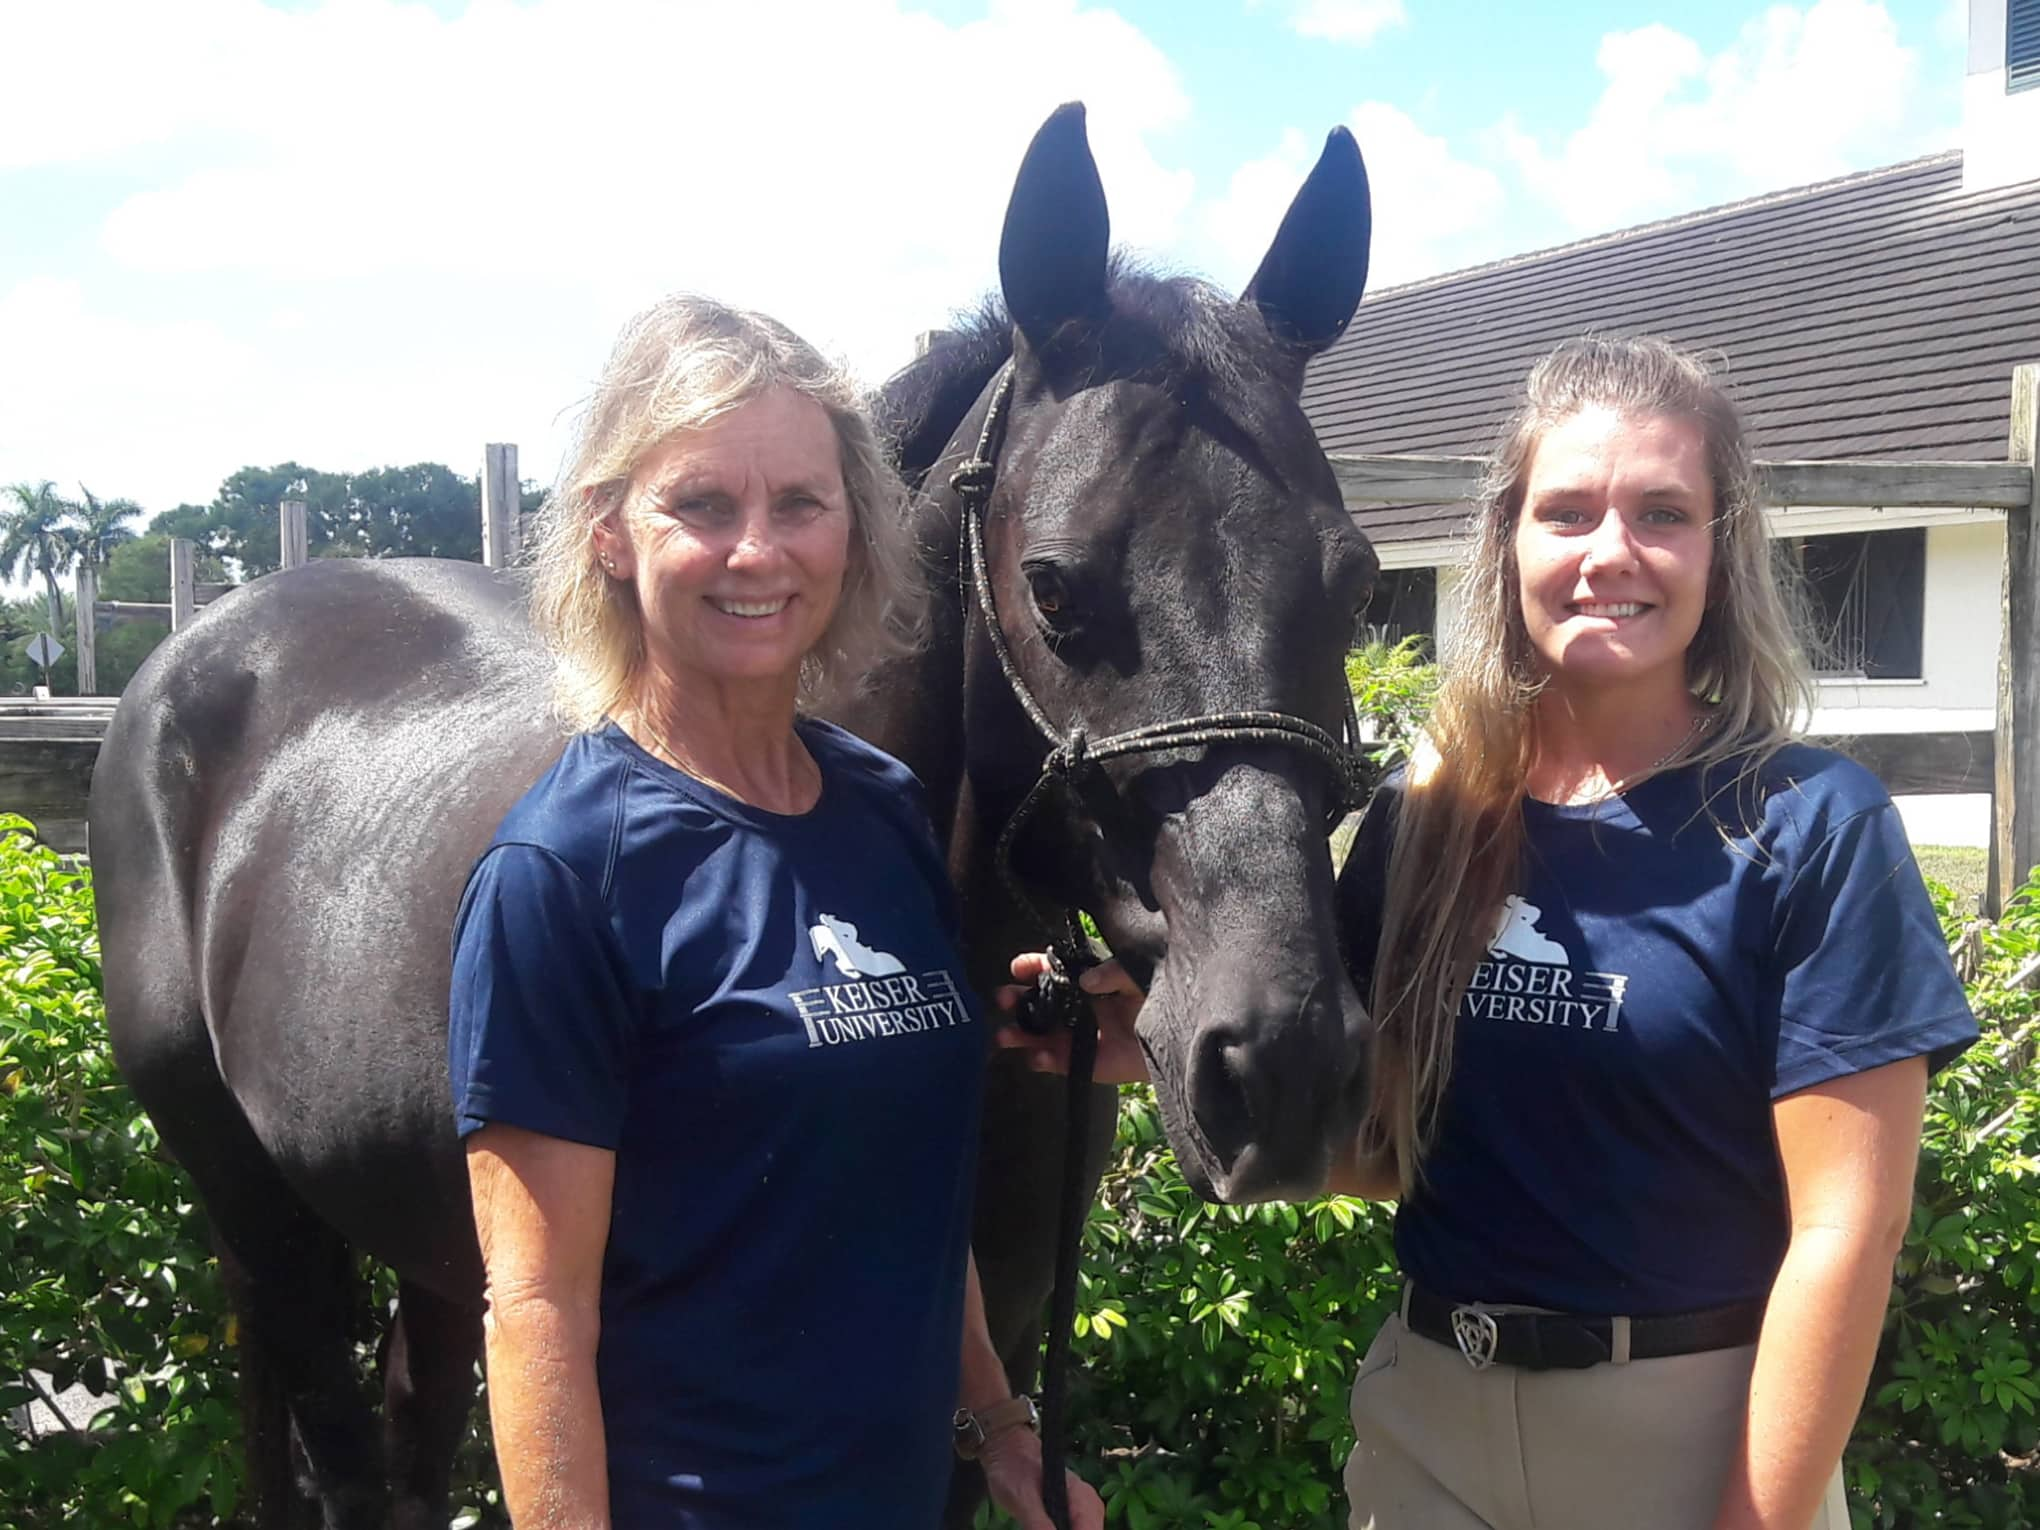 Keiser University Equine Studies Freshman Takes Lifelong Passion to the Next Step